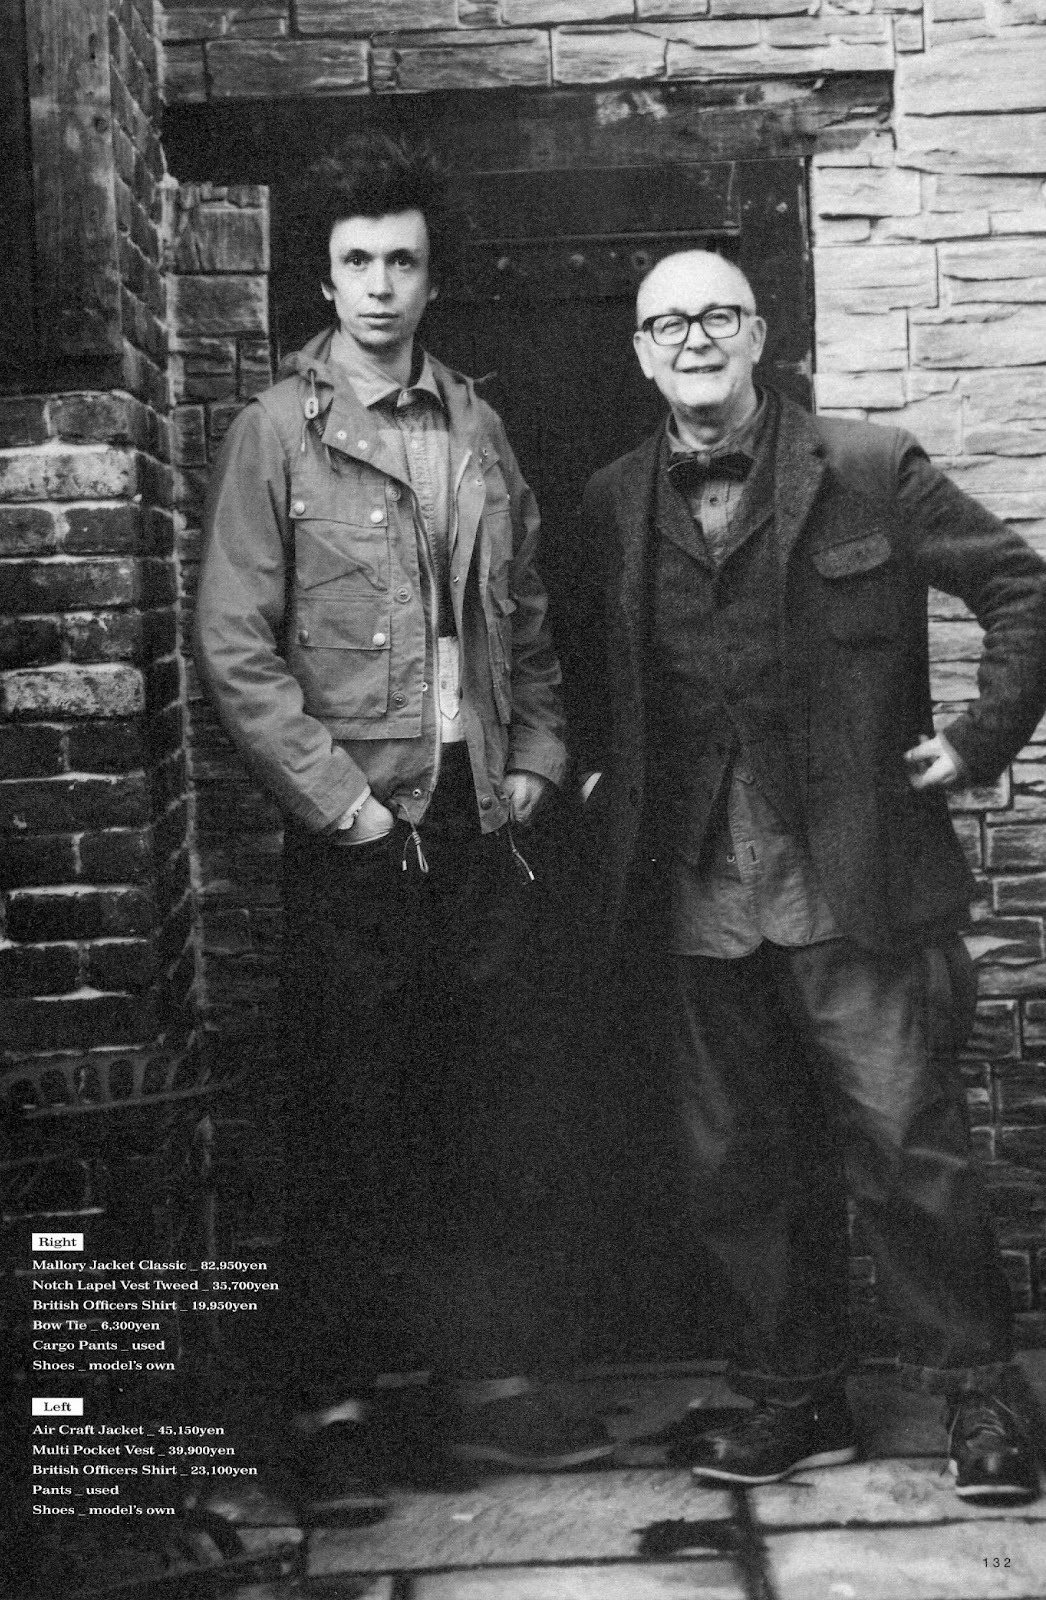 Nigel Cabourn feature from the latest edition of 2nd Magazine via Redwing1905